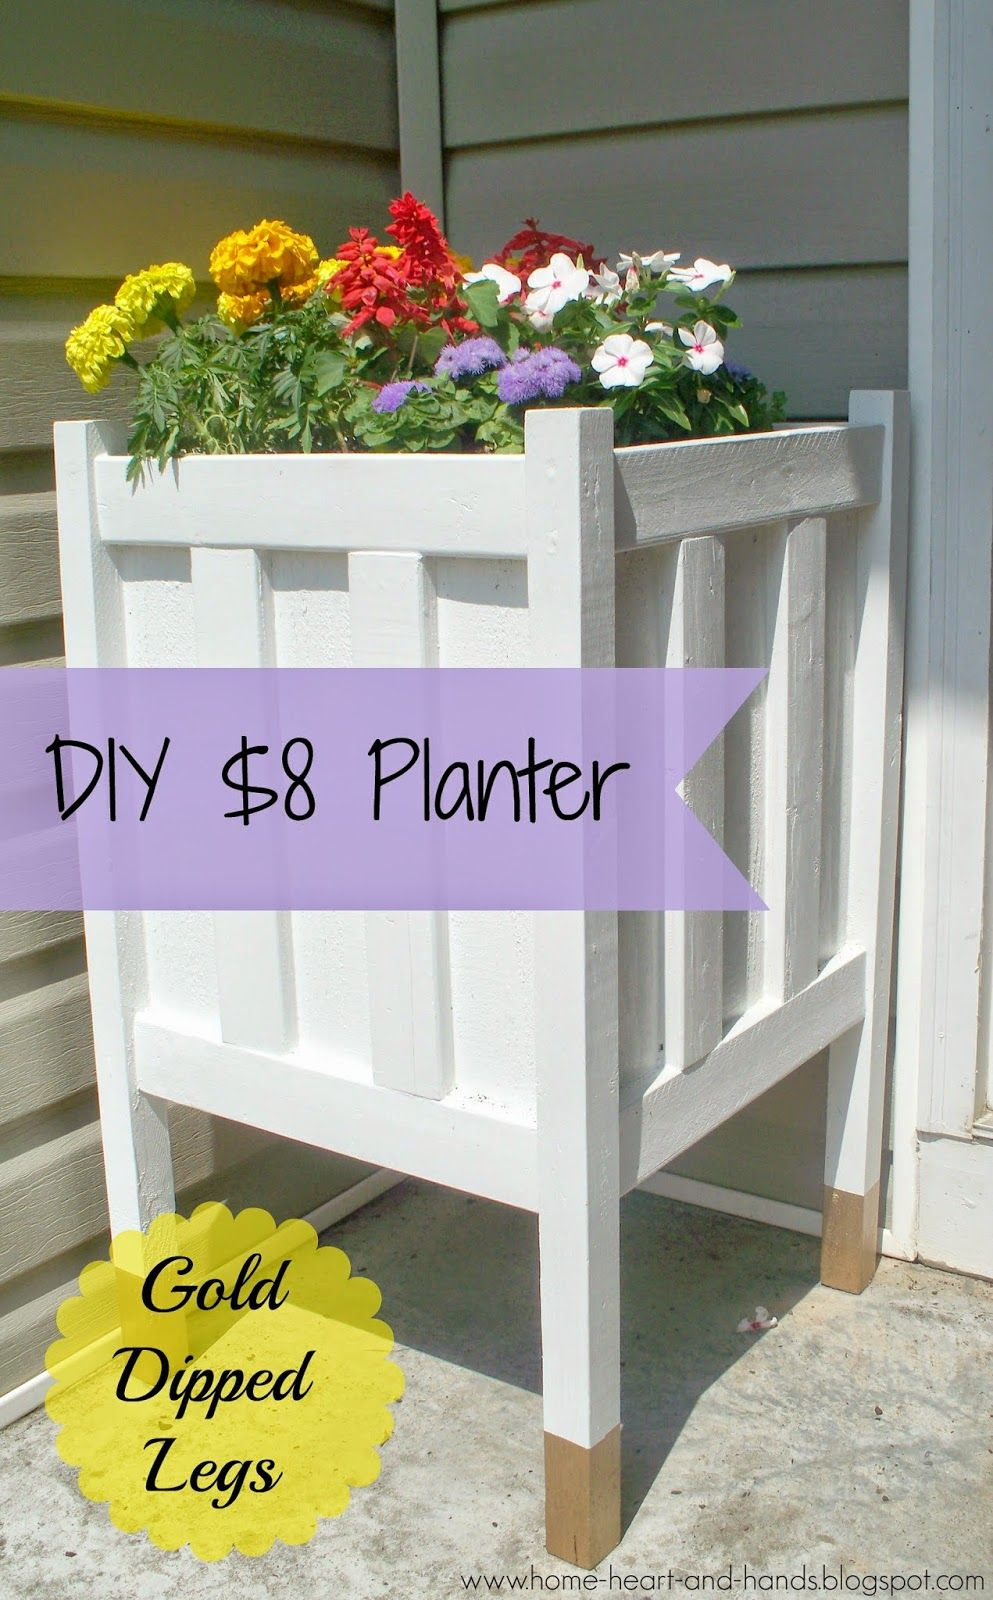 Diy Planters Home Heart And Hands Diy Front Porch Planter With Gold Dipped